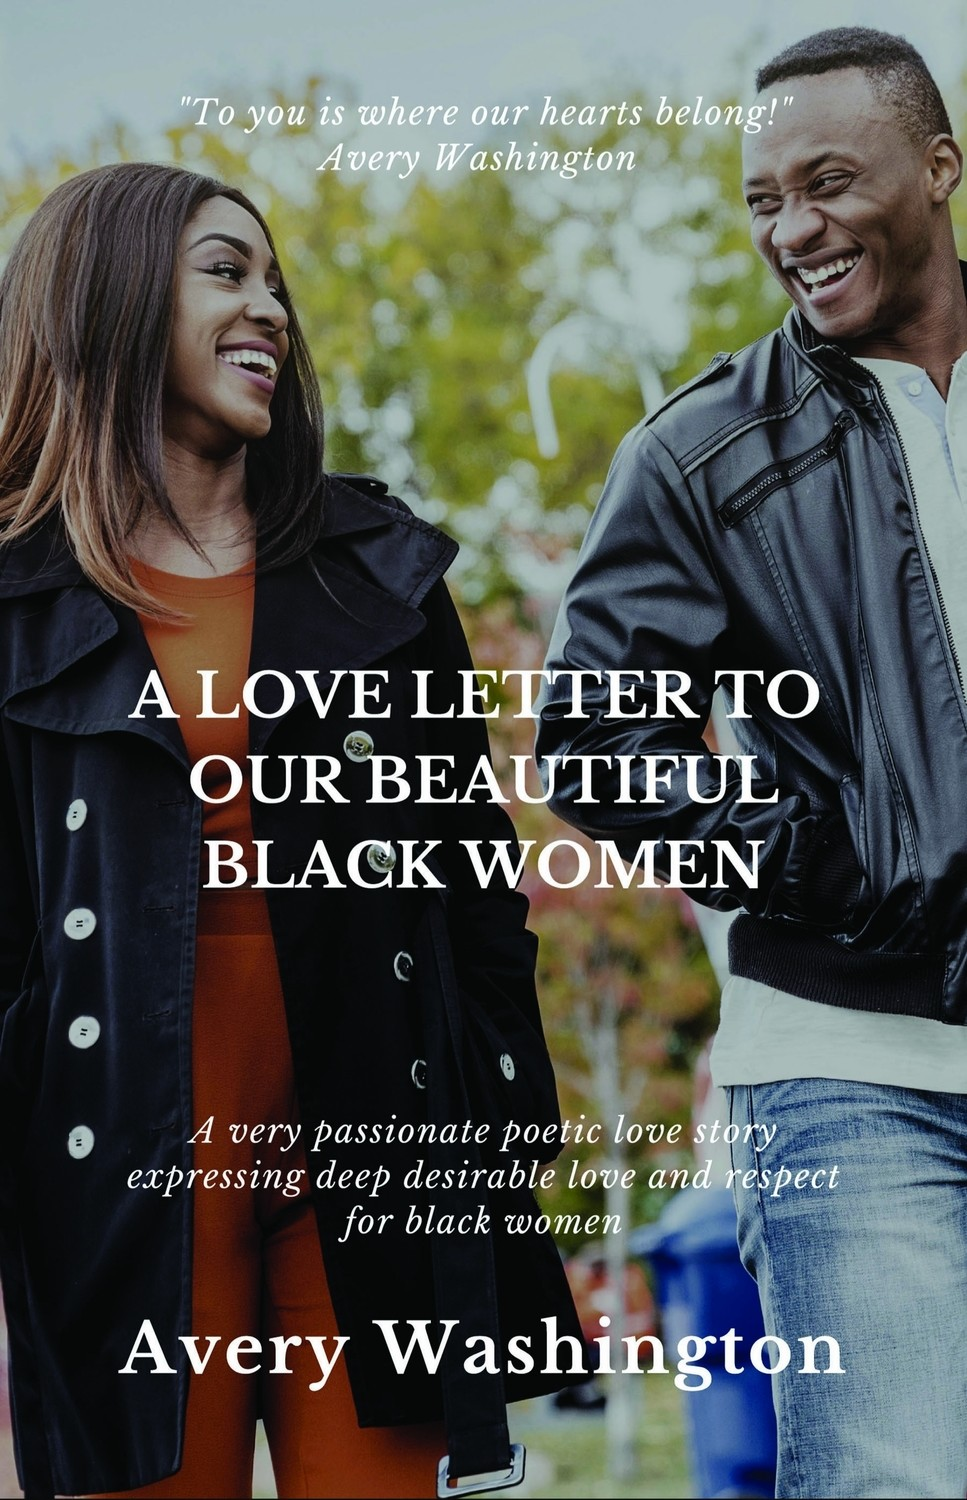 A Love Letter to Our Beautiful Black Women by Avery Washington